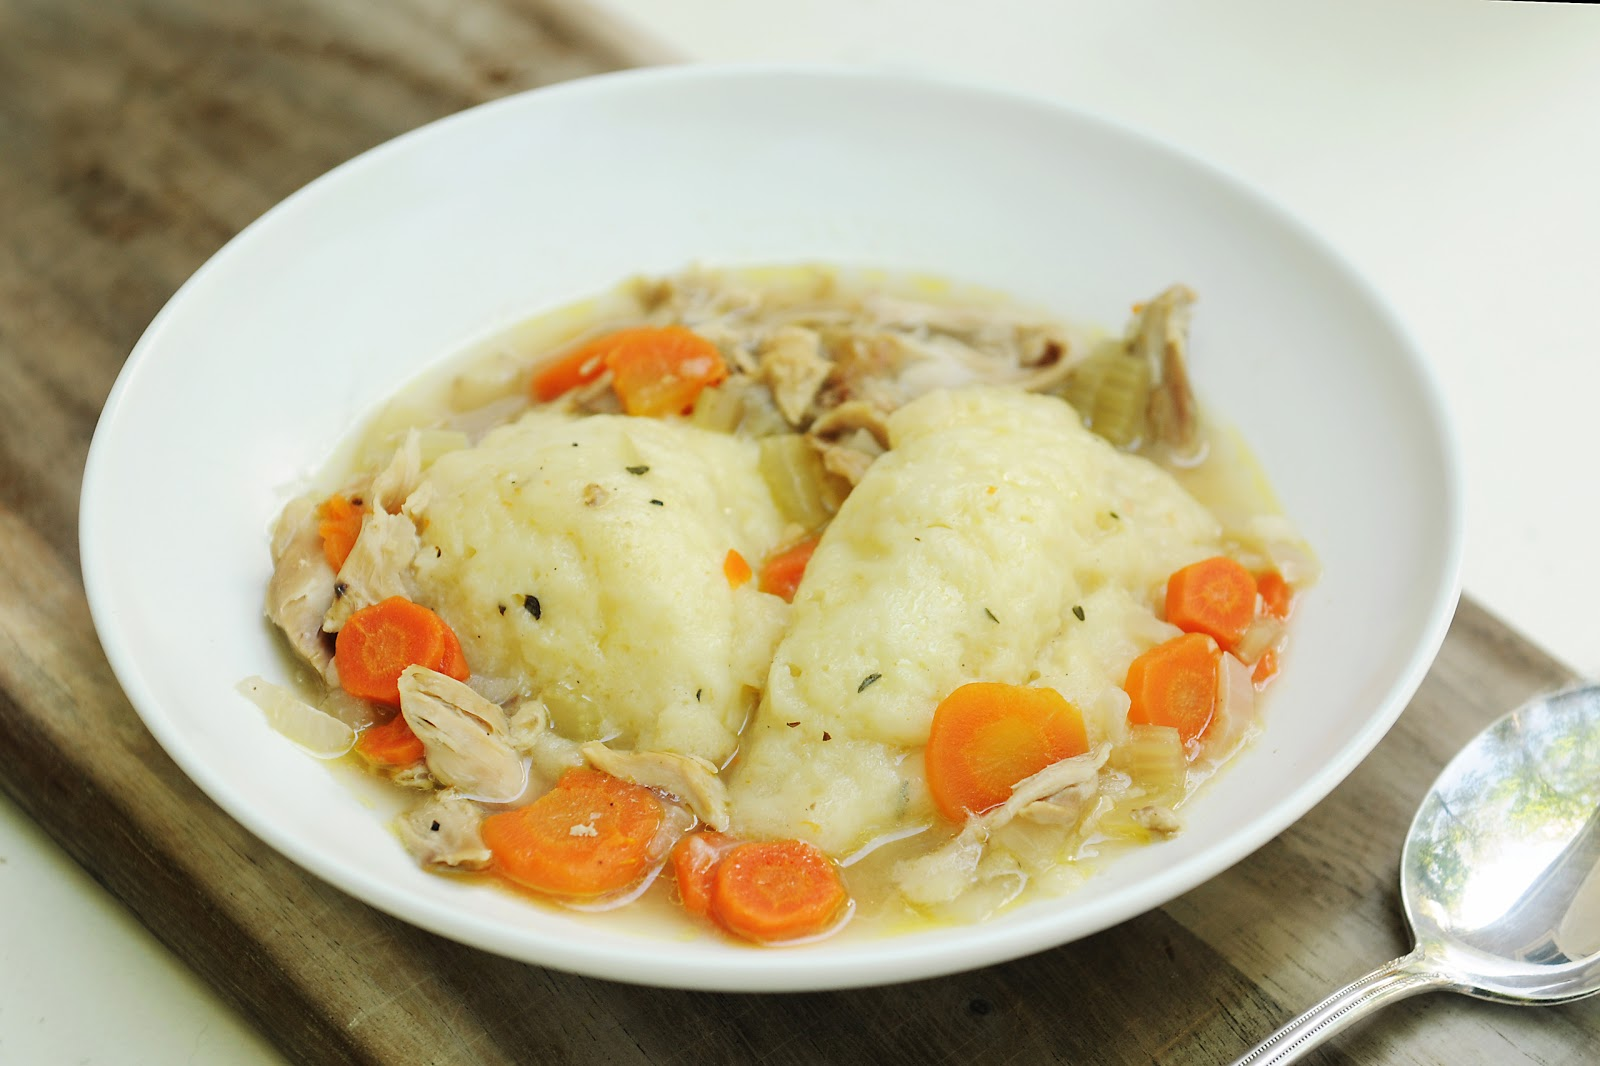 Simply Gourmet: 157. Chicken and Dumplings